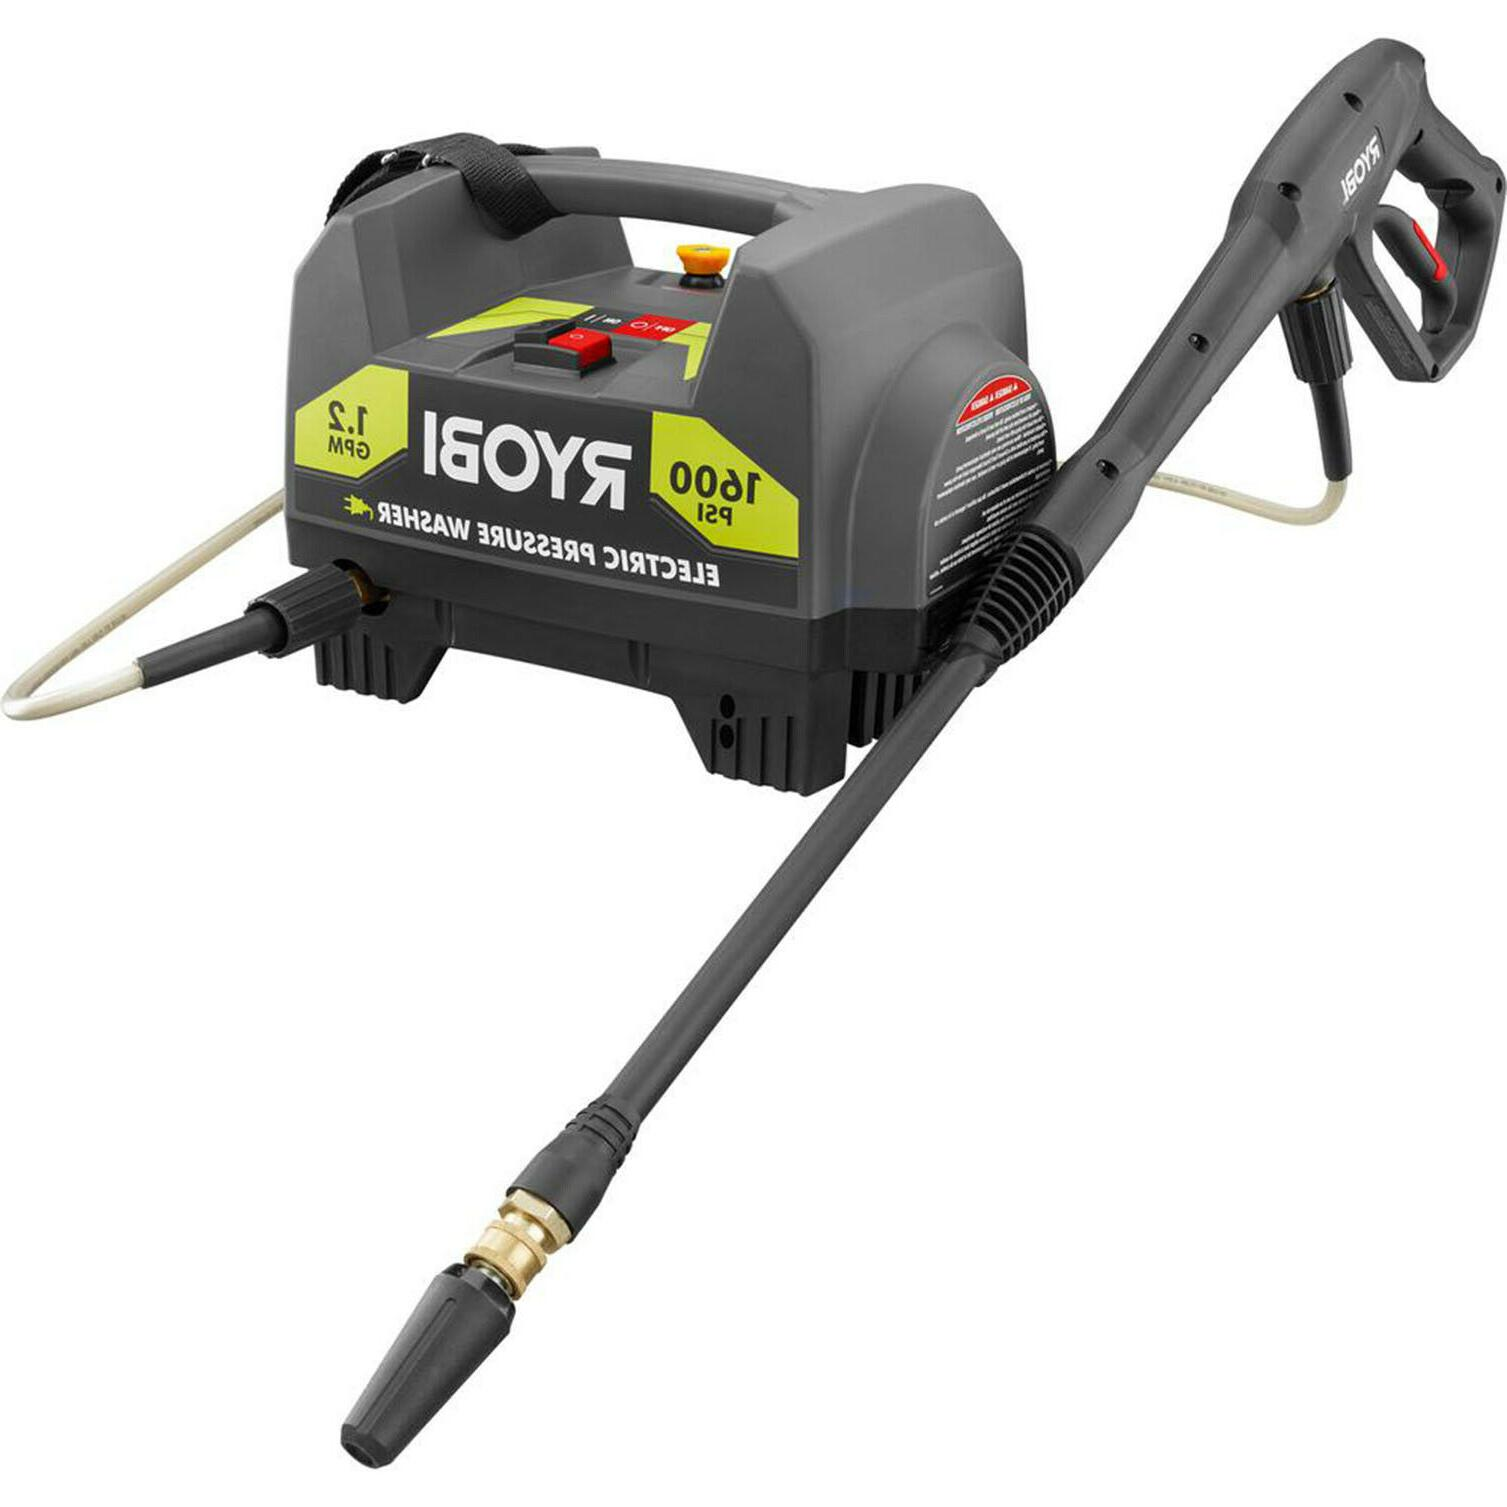 1600 PSI ELECTRIC PRESSURE WASHER Power Washer with Nozzle